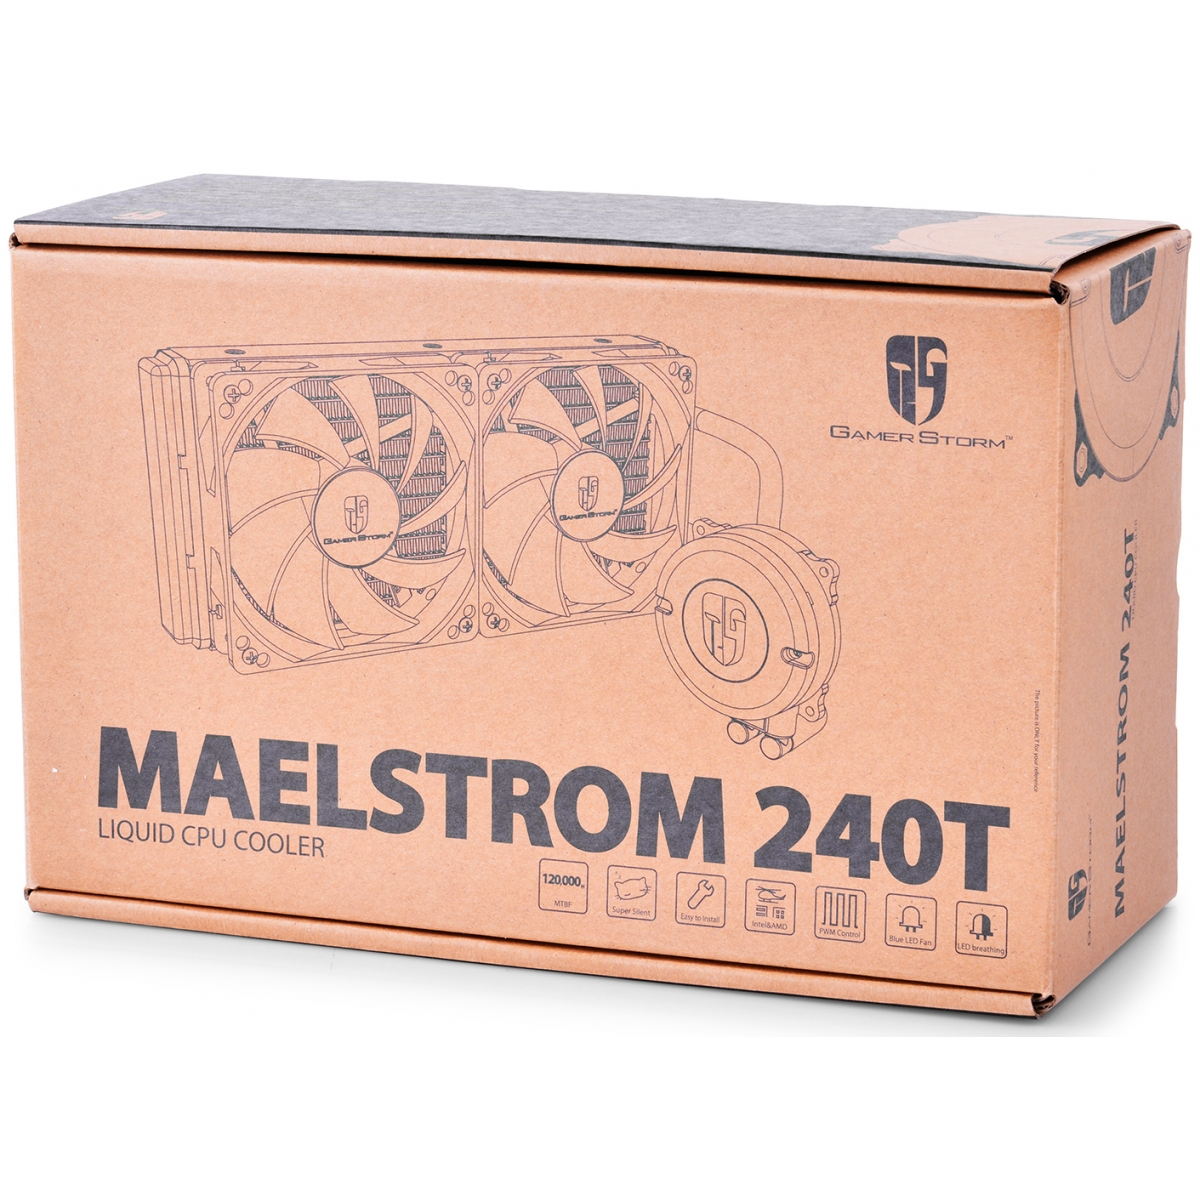 Water Cooler Gamer Storm DeepCool Maelstrom 240T, 240mm, Intel-AMD, DP-GS-H12RL-MS240TWFAM4